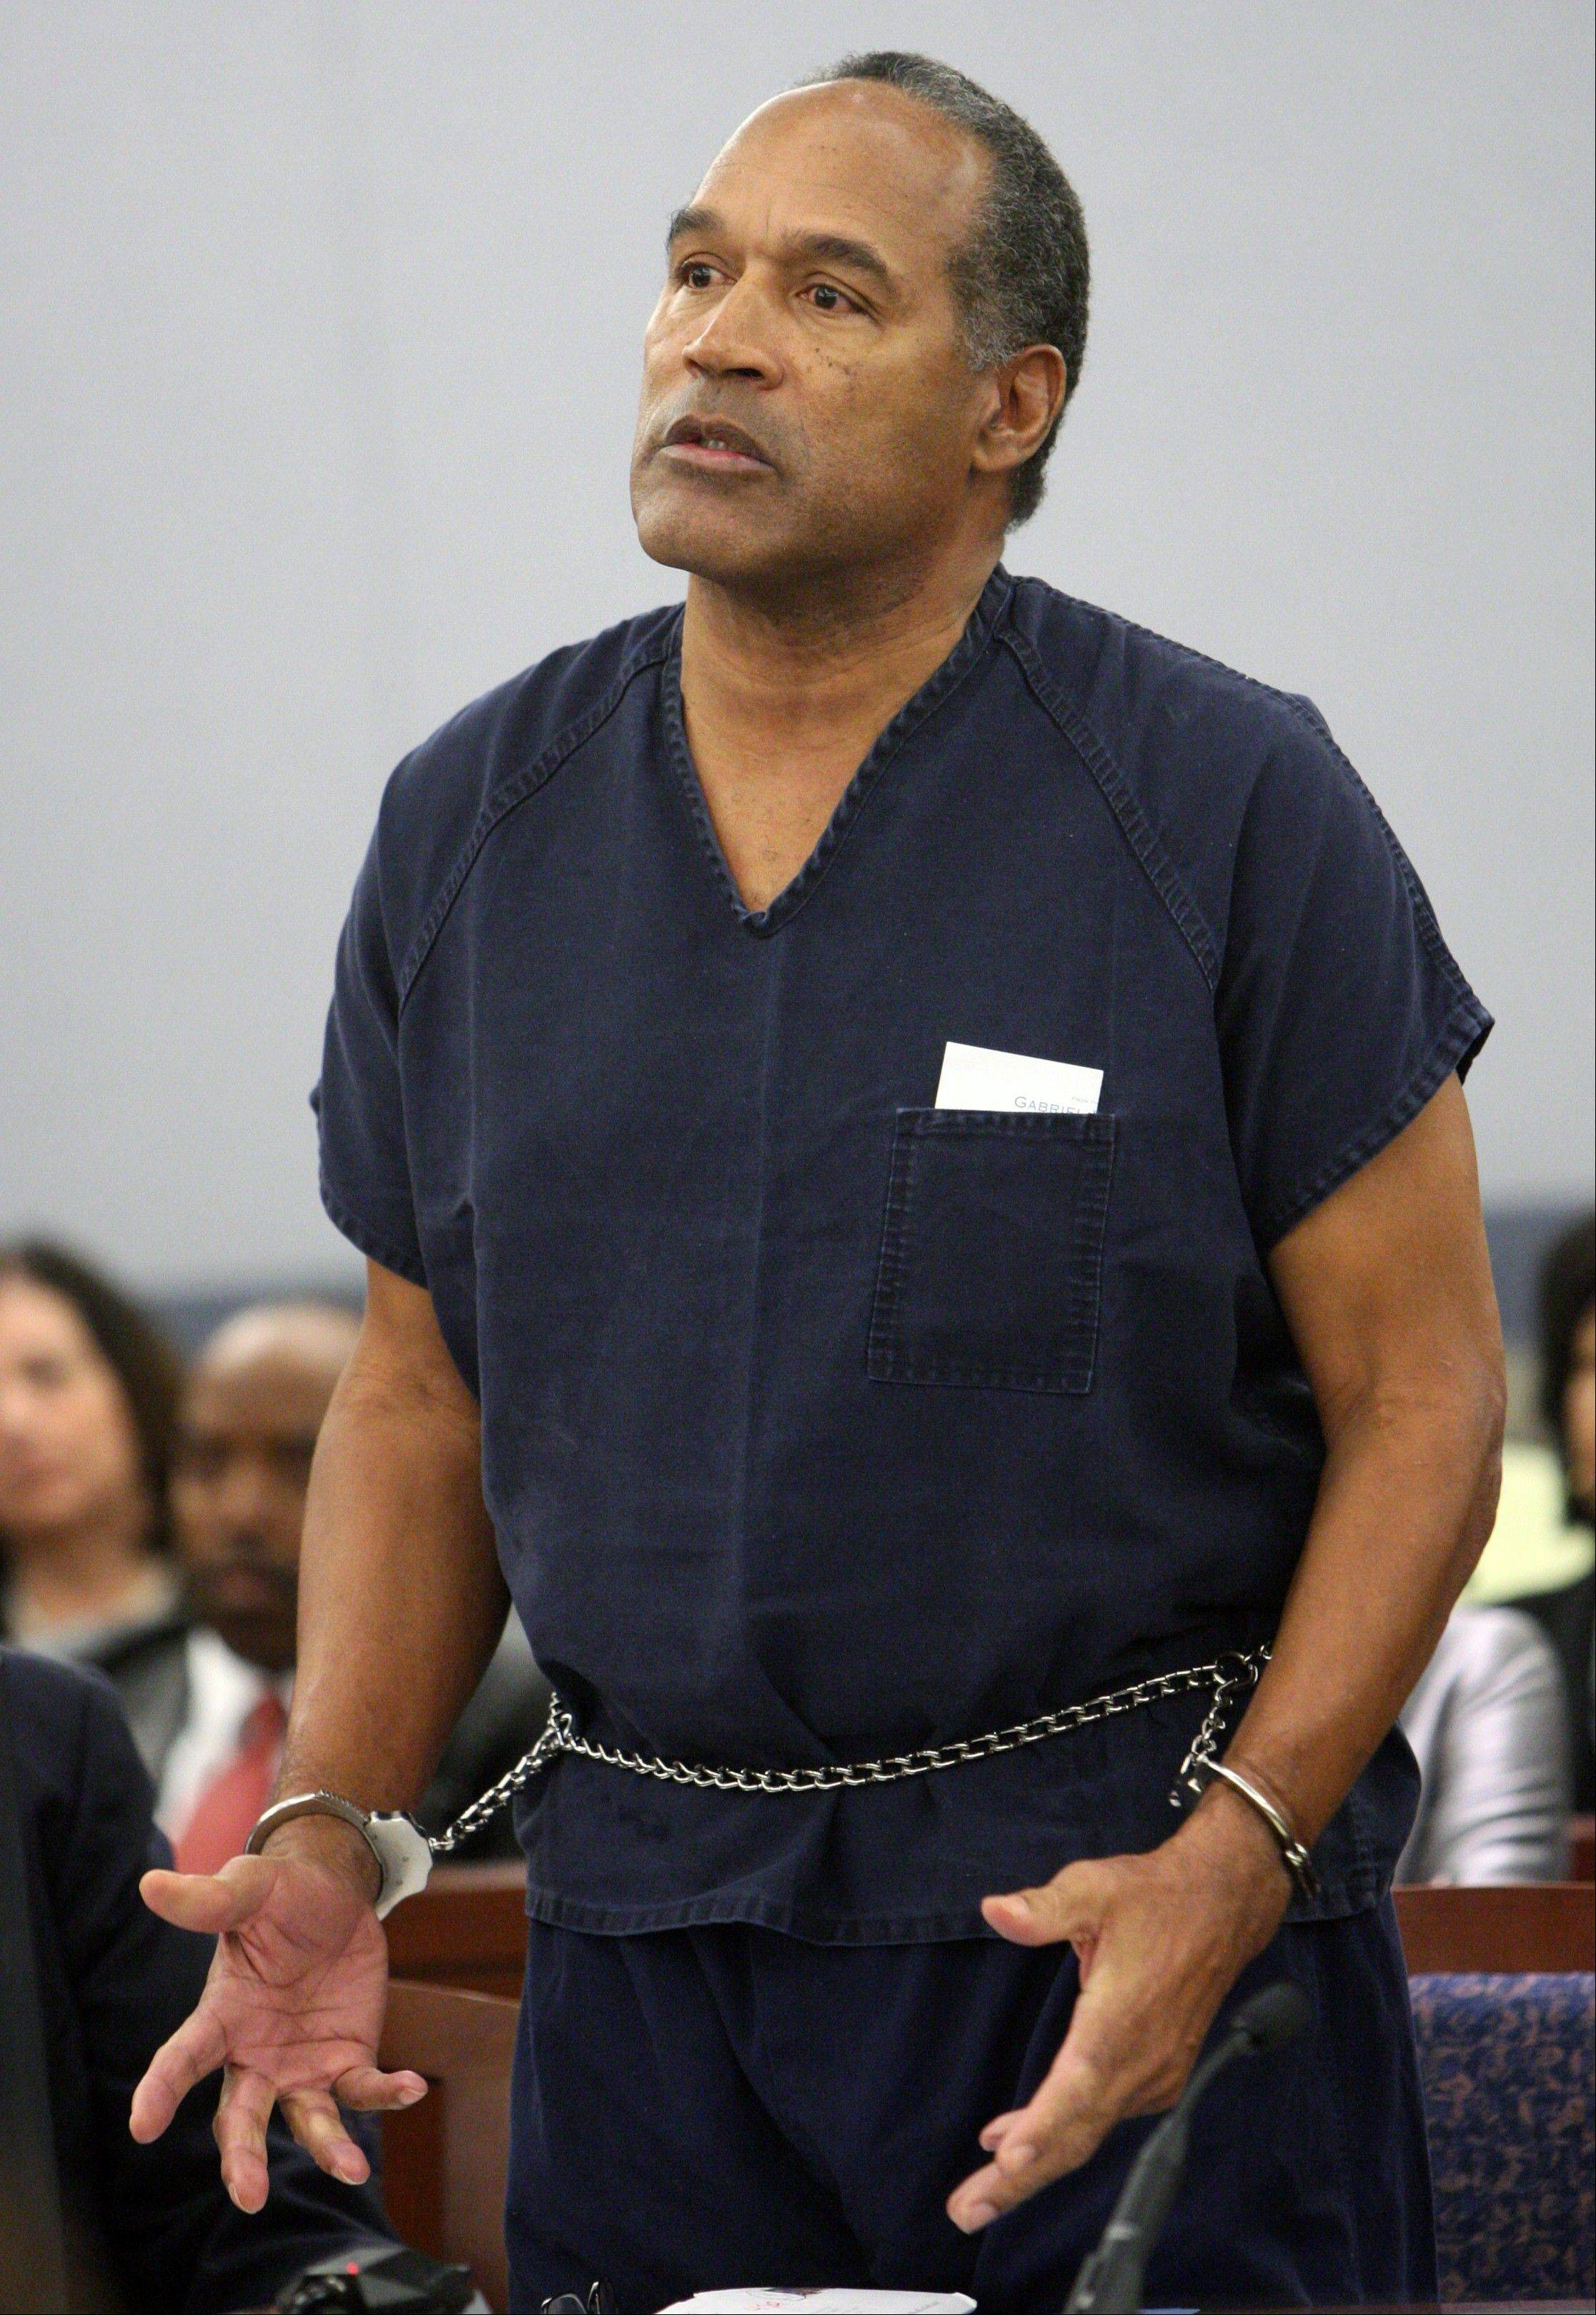 In this Dec. 5, 2008 file photo, O.J. Simpson speaks during his sentencing at the Clark County Regional Justice Center courtroom in Las Vegas. Simpson is heading back to the Las Vegas courthouse where he was convicted of leading five men in an armed sports memorabilia heist to ask a judge for a new trial because, he says, the Florida lawyer he paid nearly $700,000 botched his defense. The return of O.J. Simpson to a Las Vegas courtroom next Monday, May, 13, will remind Americans of a tragedy that became a national obsession and in the process changed the country's attitude toward the justice system, the media and celebrity.